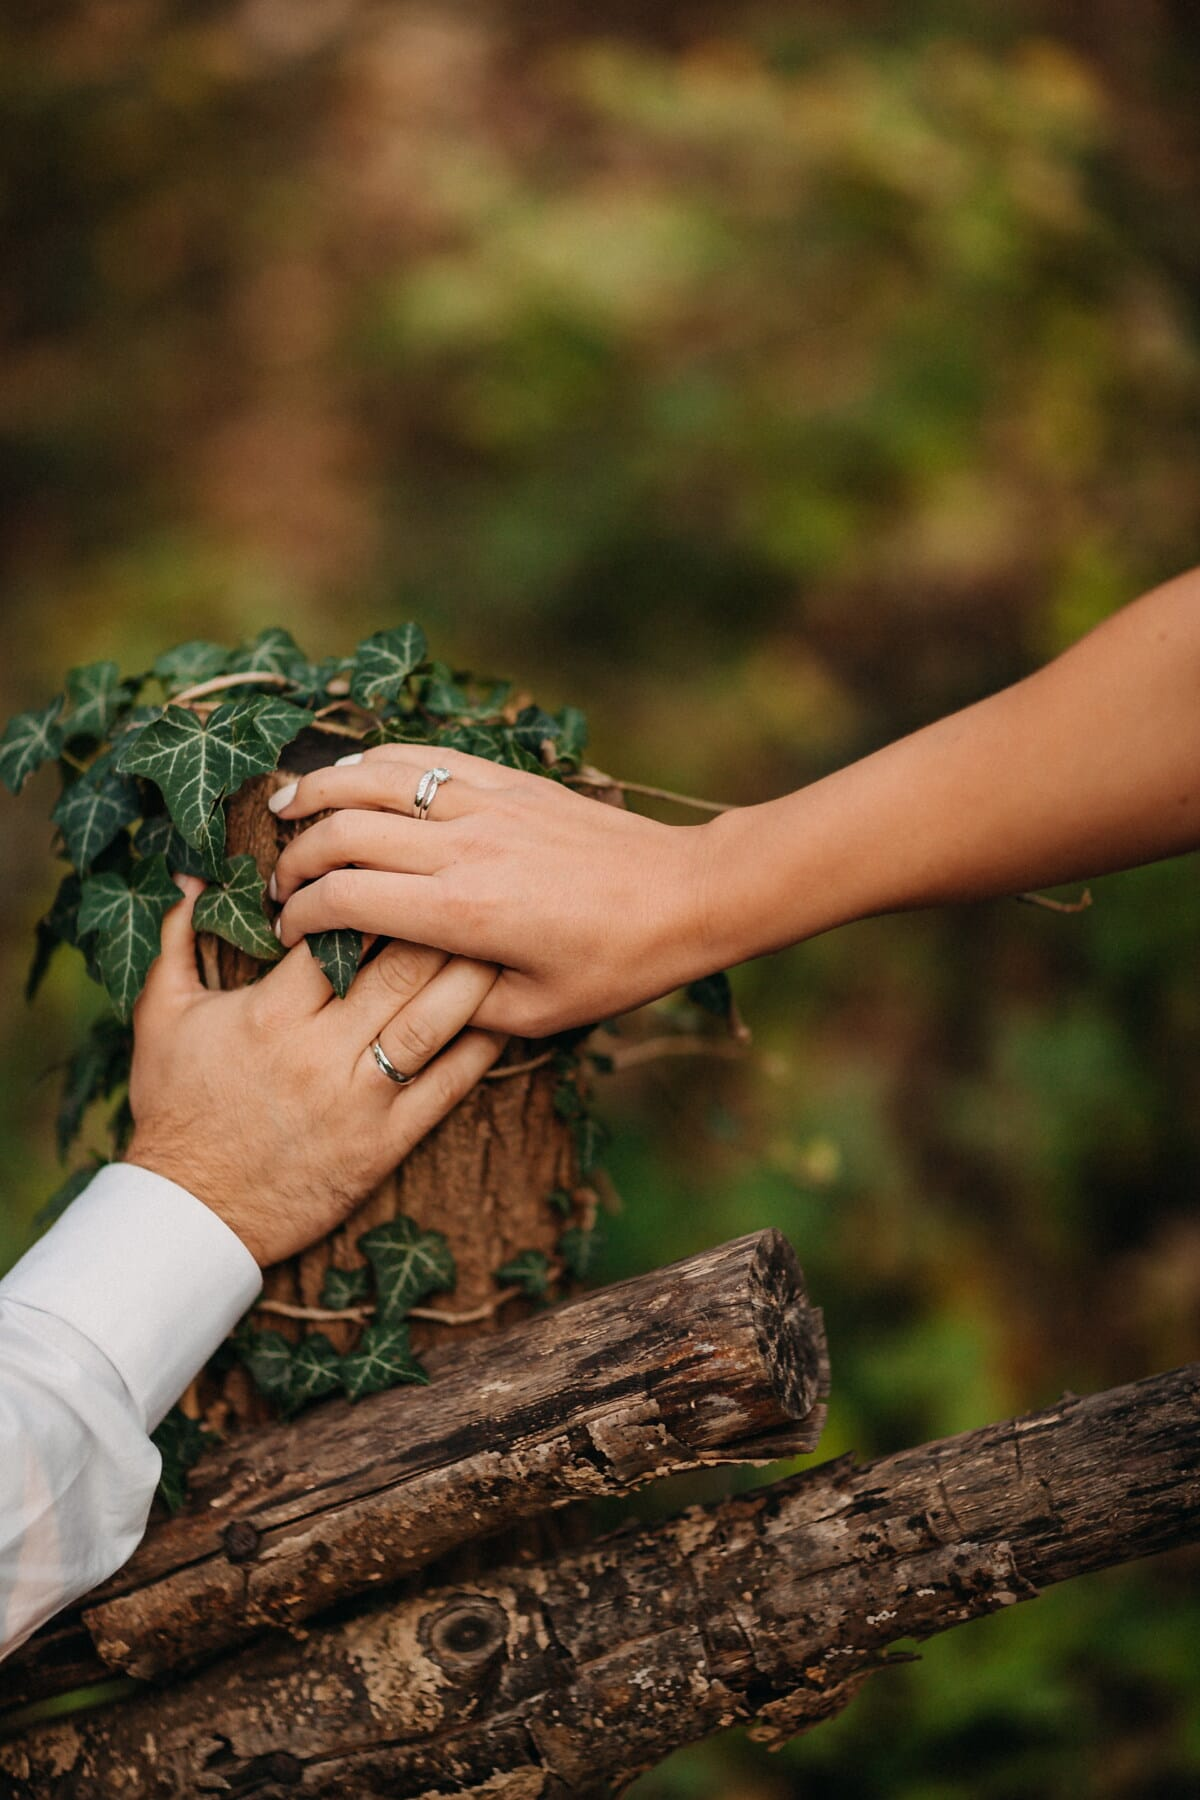 togetherness, wedding ring, holding hands, jewelry, hands, picket fence, ivy, people, nature, wood